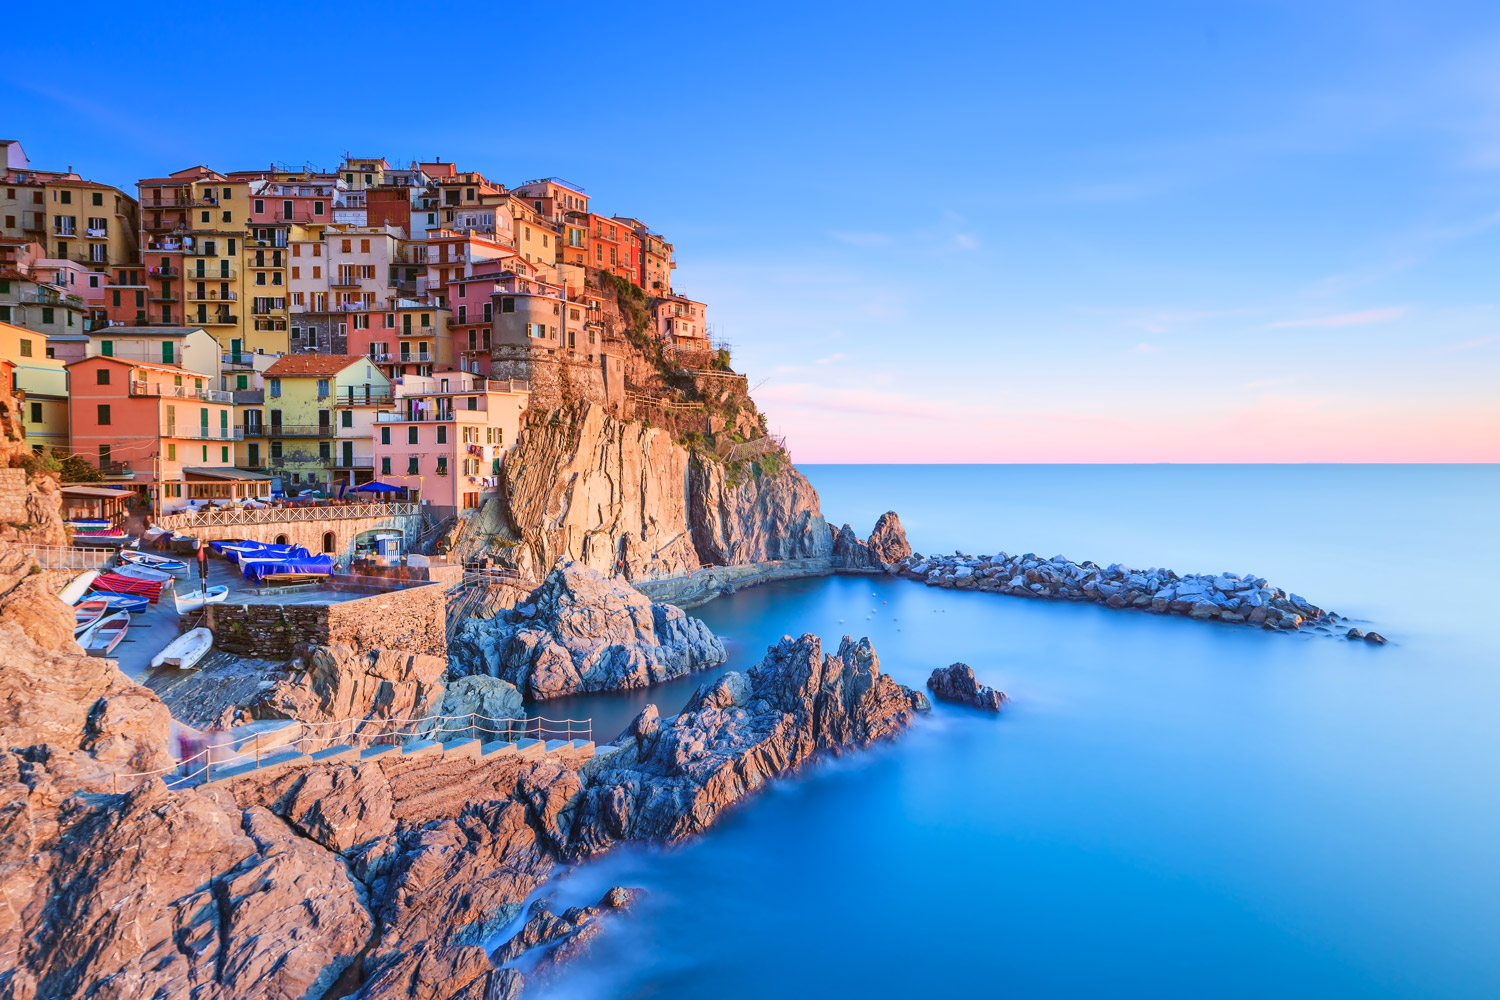 Beautiful place in Italy